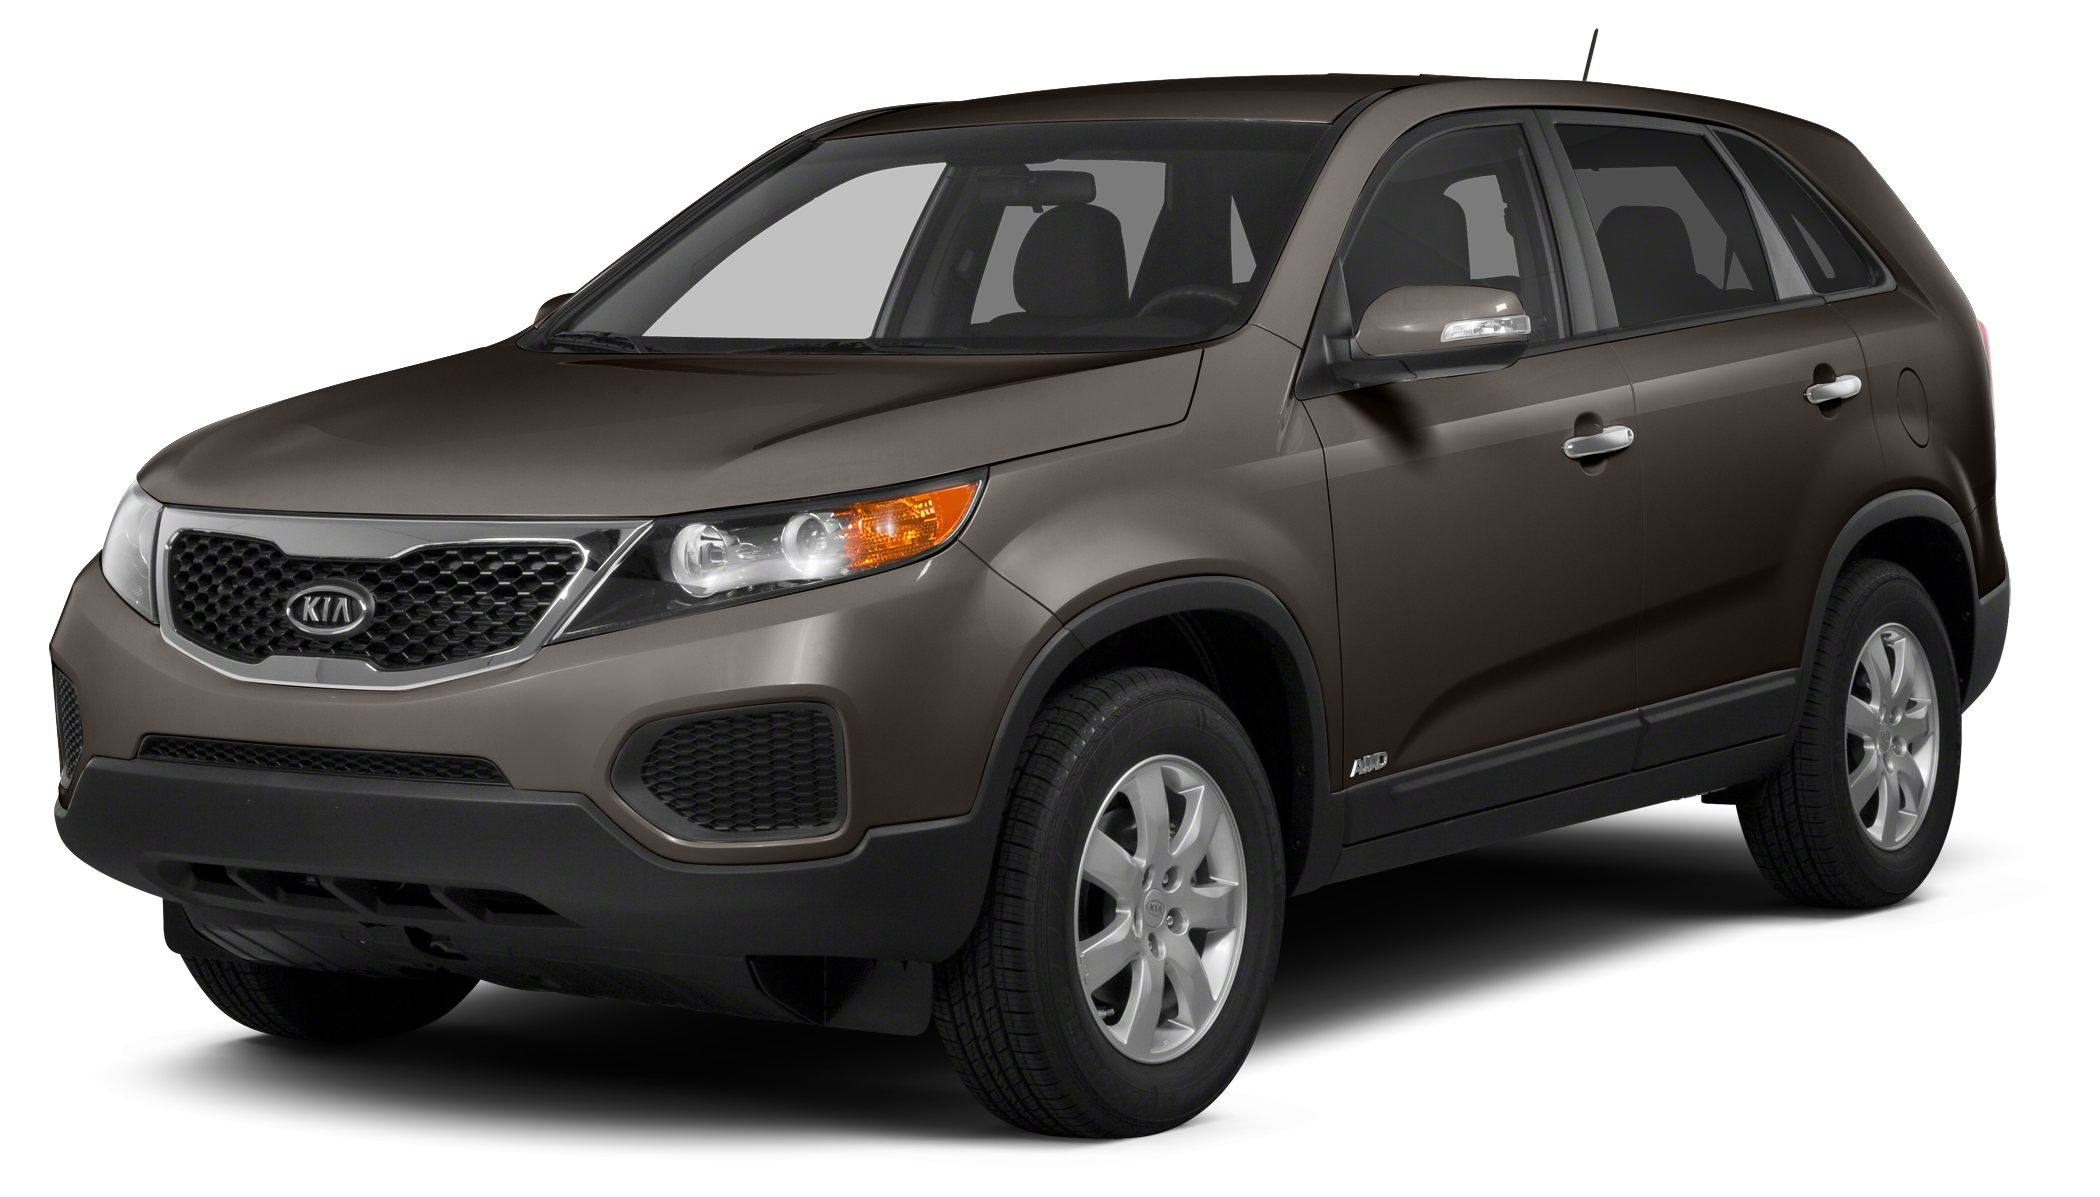 2011 Kia Sorento EX Miles 80220Color Brown Stock 18838 VIN 5XYKU4A26BG101237